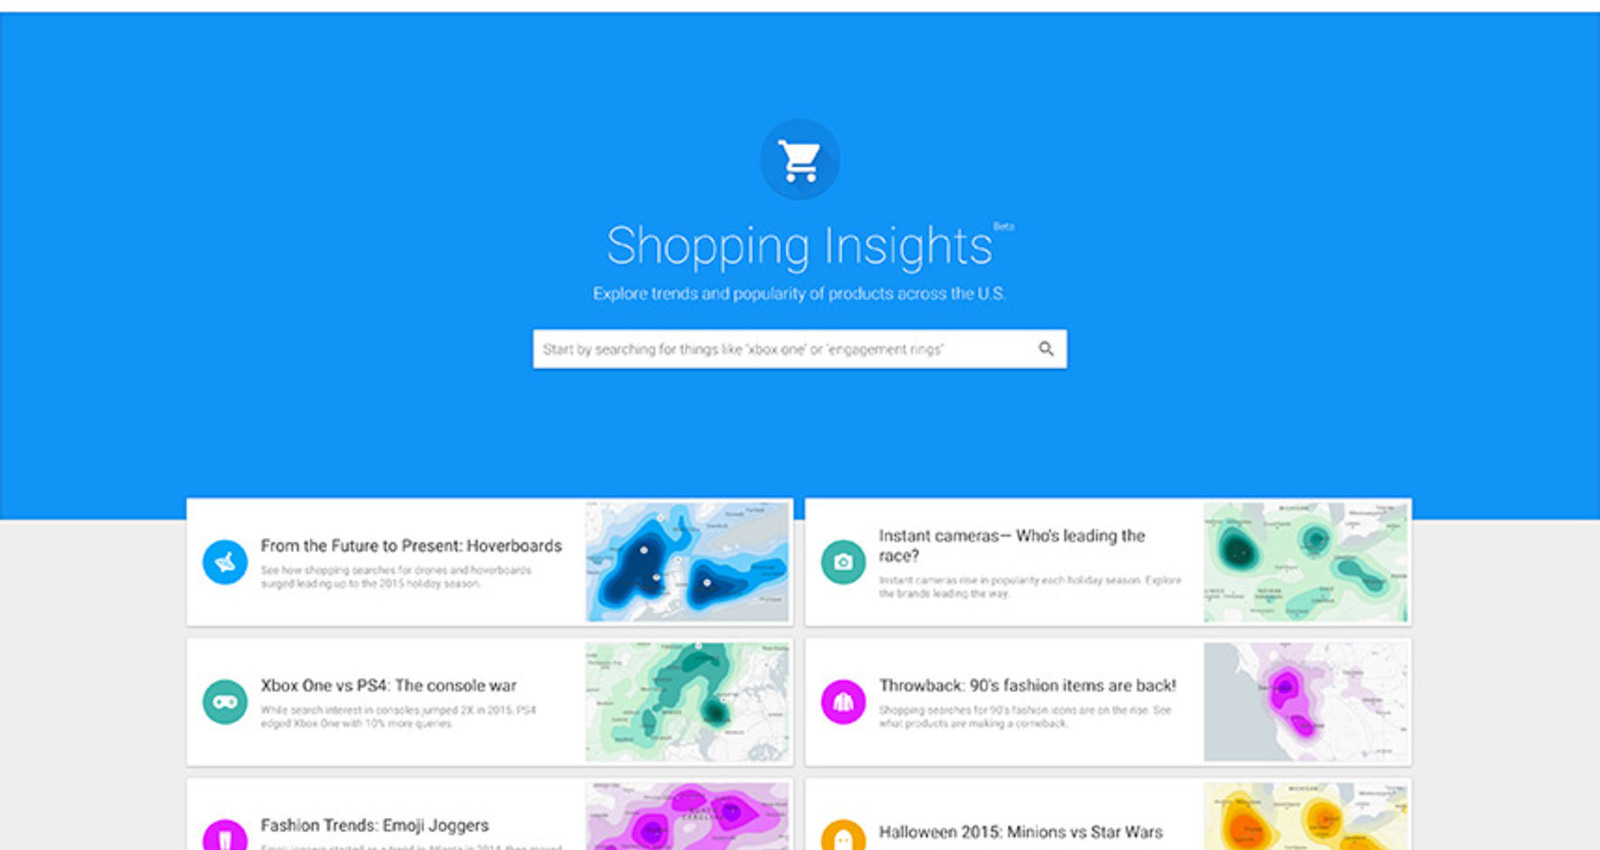 Google Shopping Insights